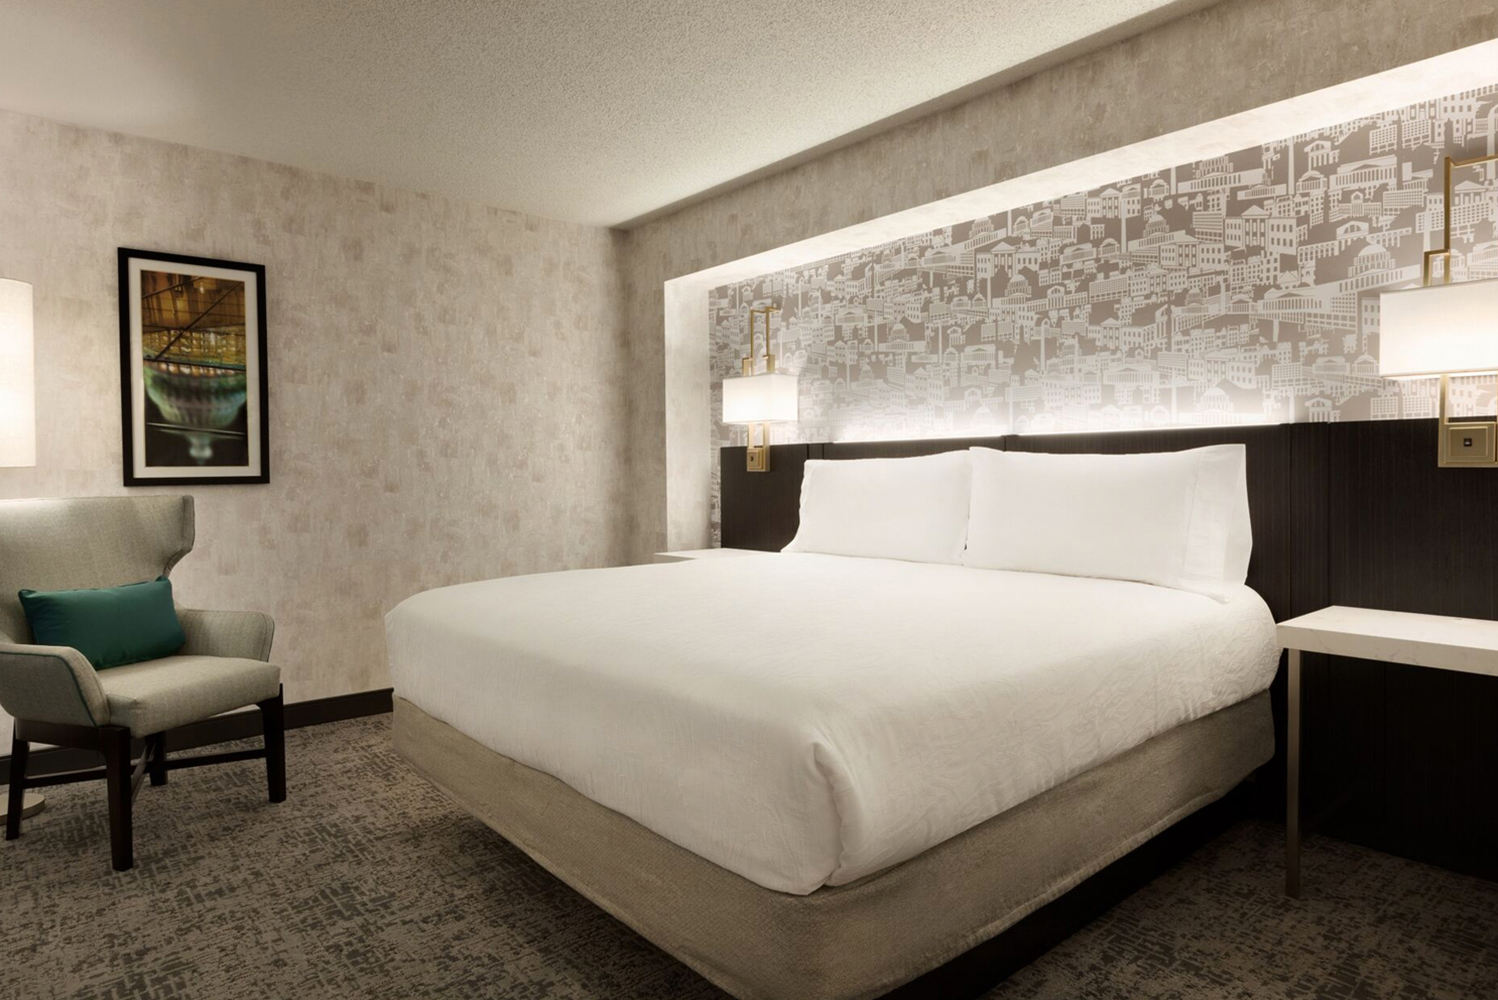 The renovation encompassed the top-to-bottom renovation of all 300 guestrooms and suites, bathroom upgrades and refresh of guestroom corridors.